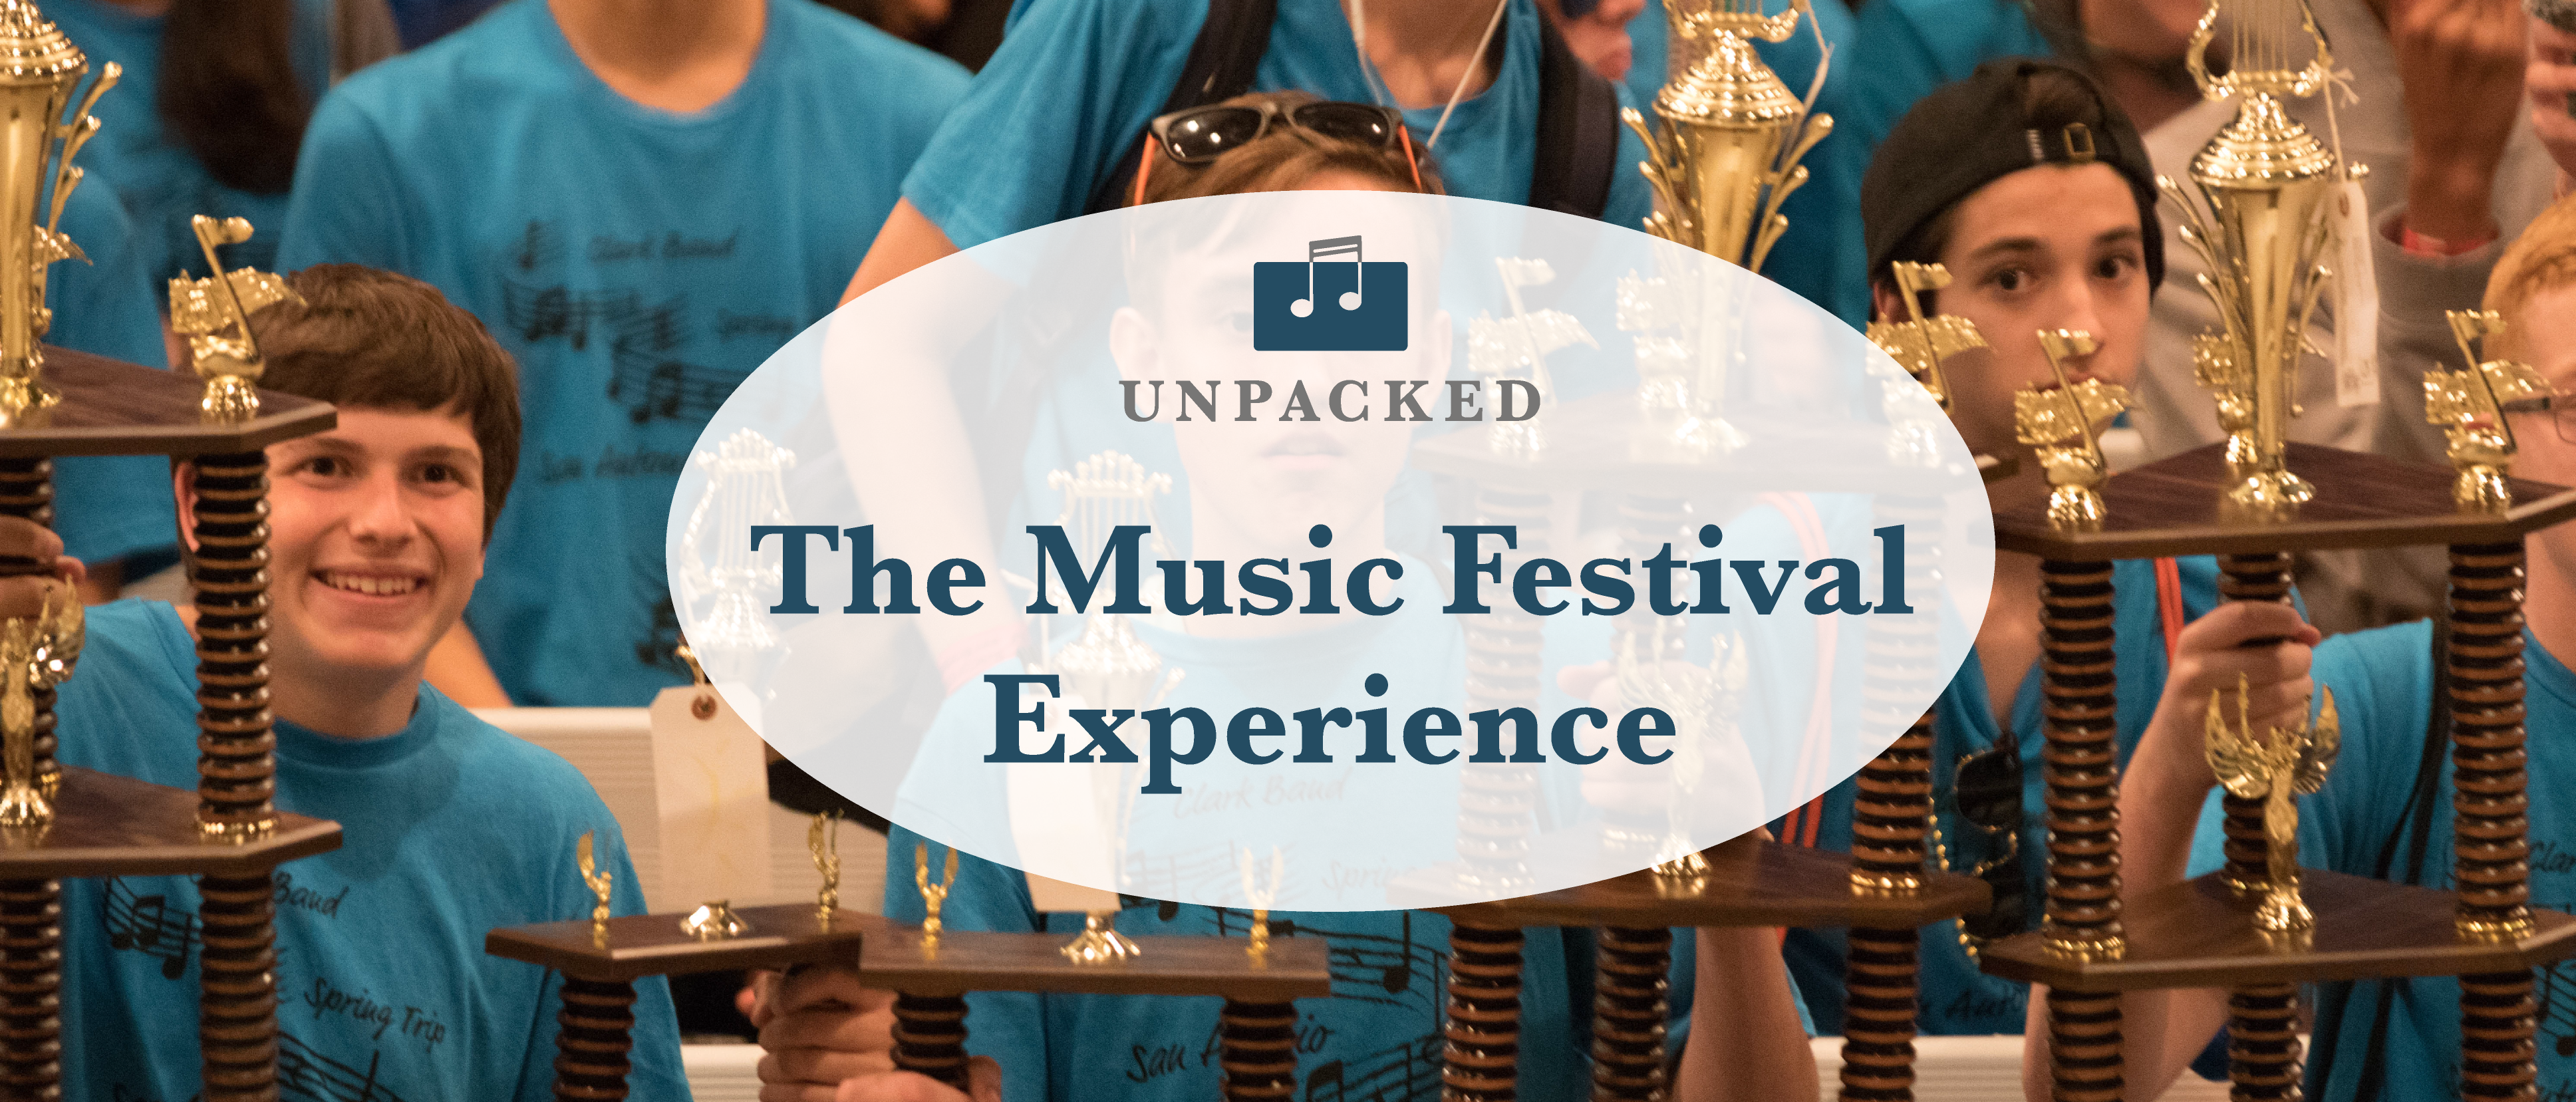 The Music Festival Experience